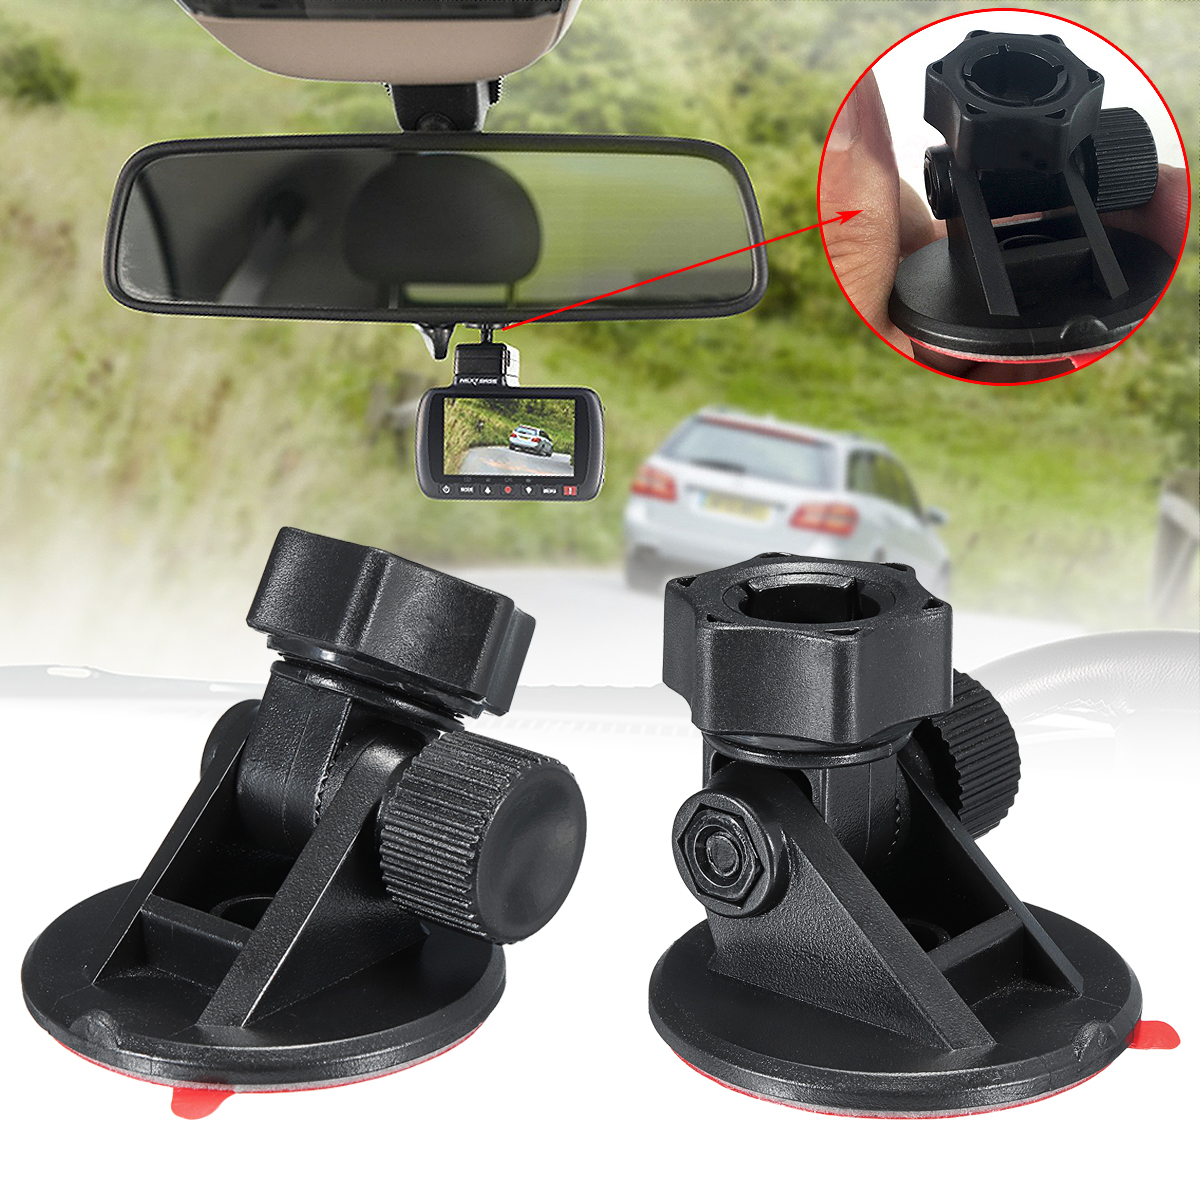 Adhesive Mount Holder for Nextbase Car GPS Dash Cam 112 212 312GW 412GW 512GW Car Roof DVR